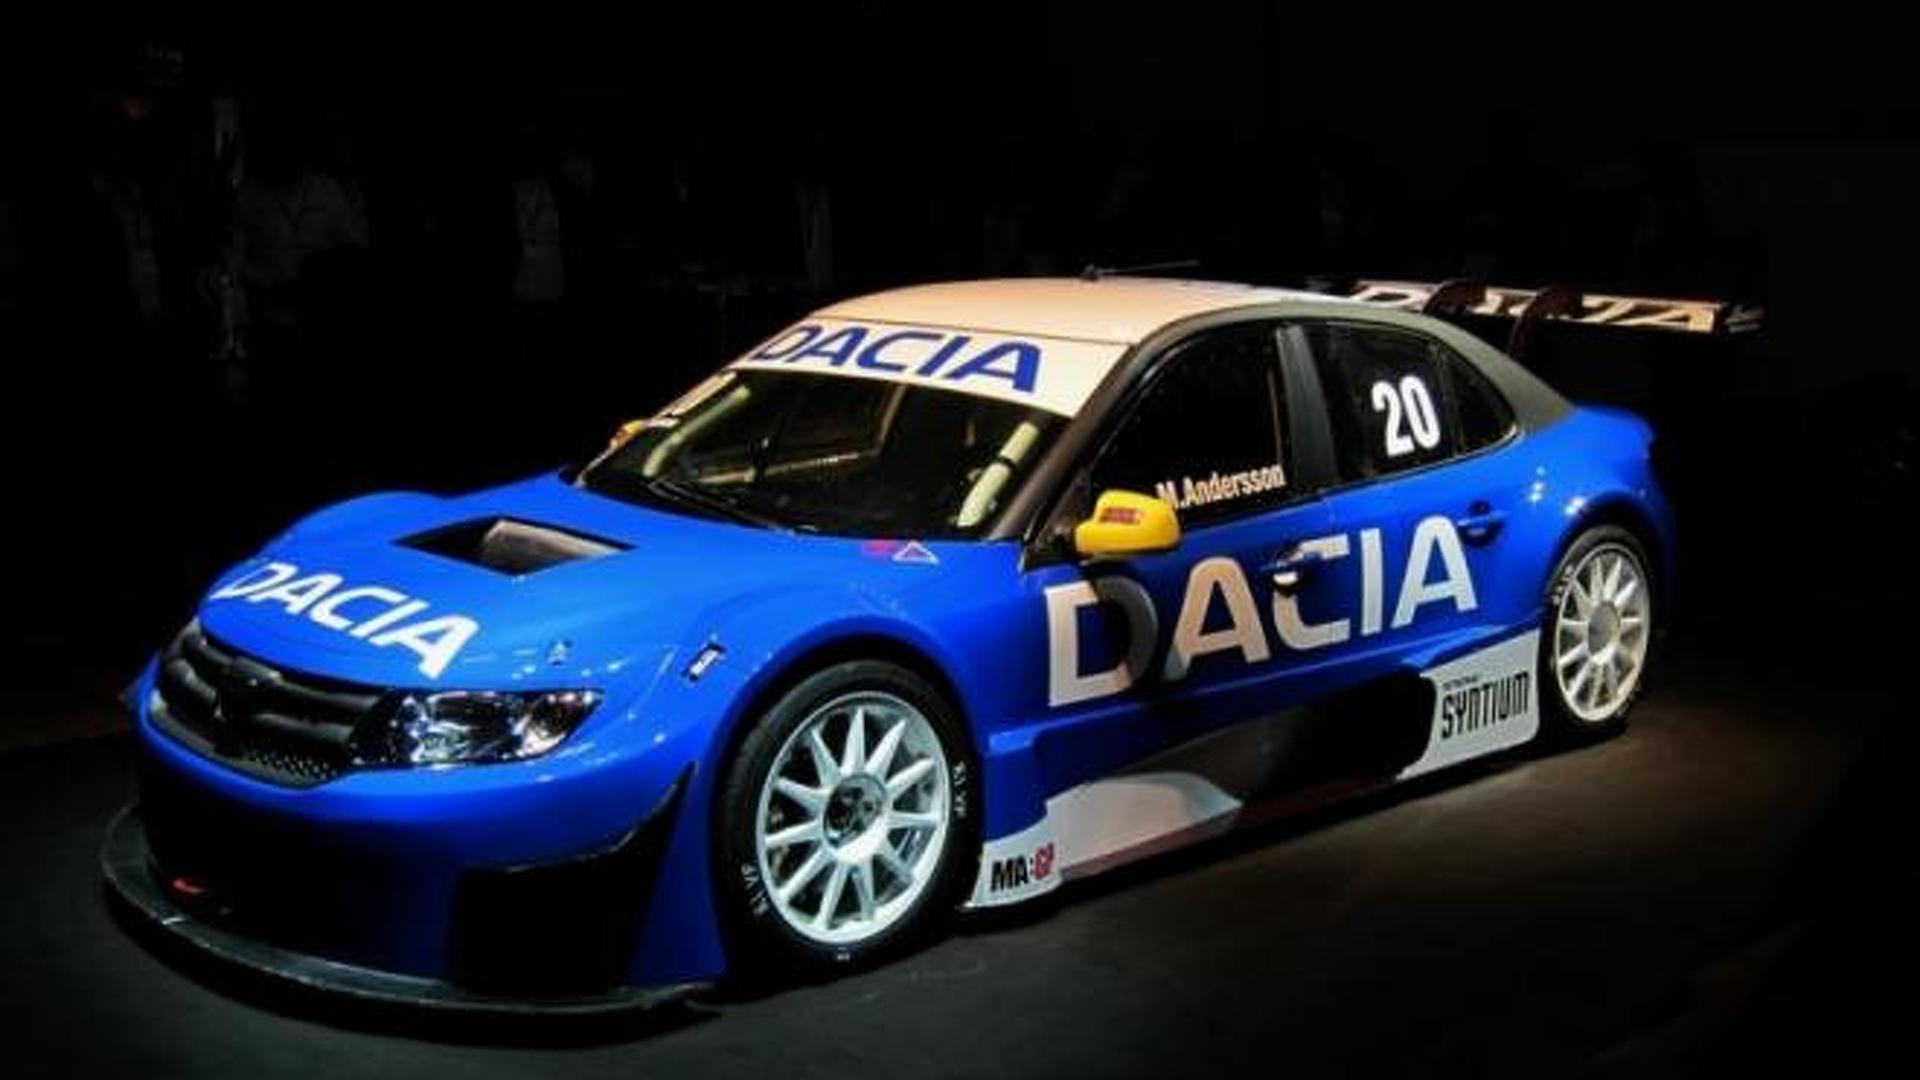 Dacia to enter Formula 1 in 2015 - rumours